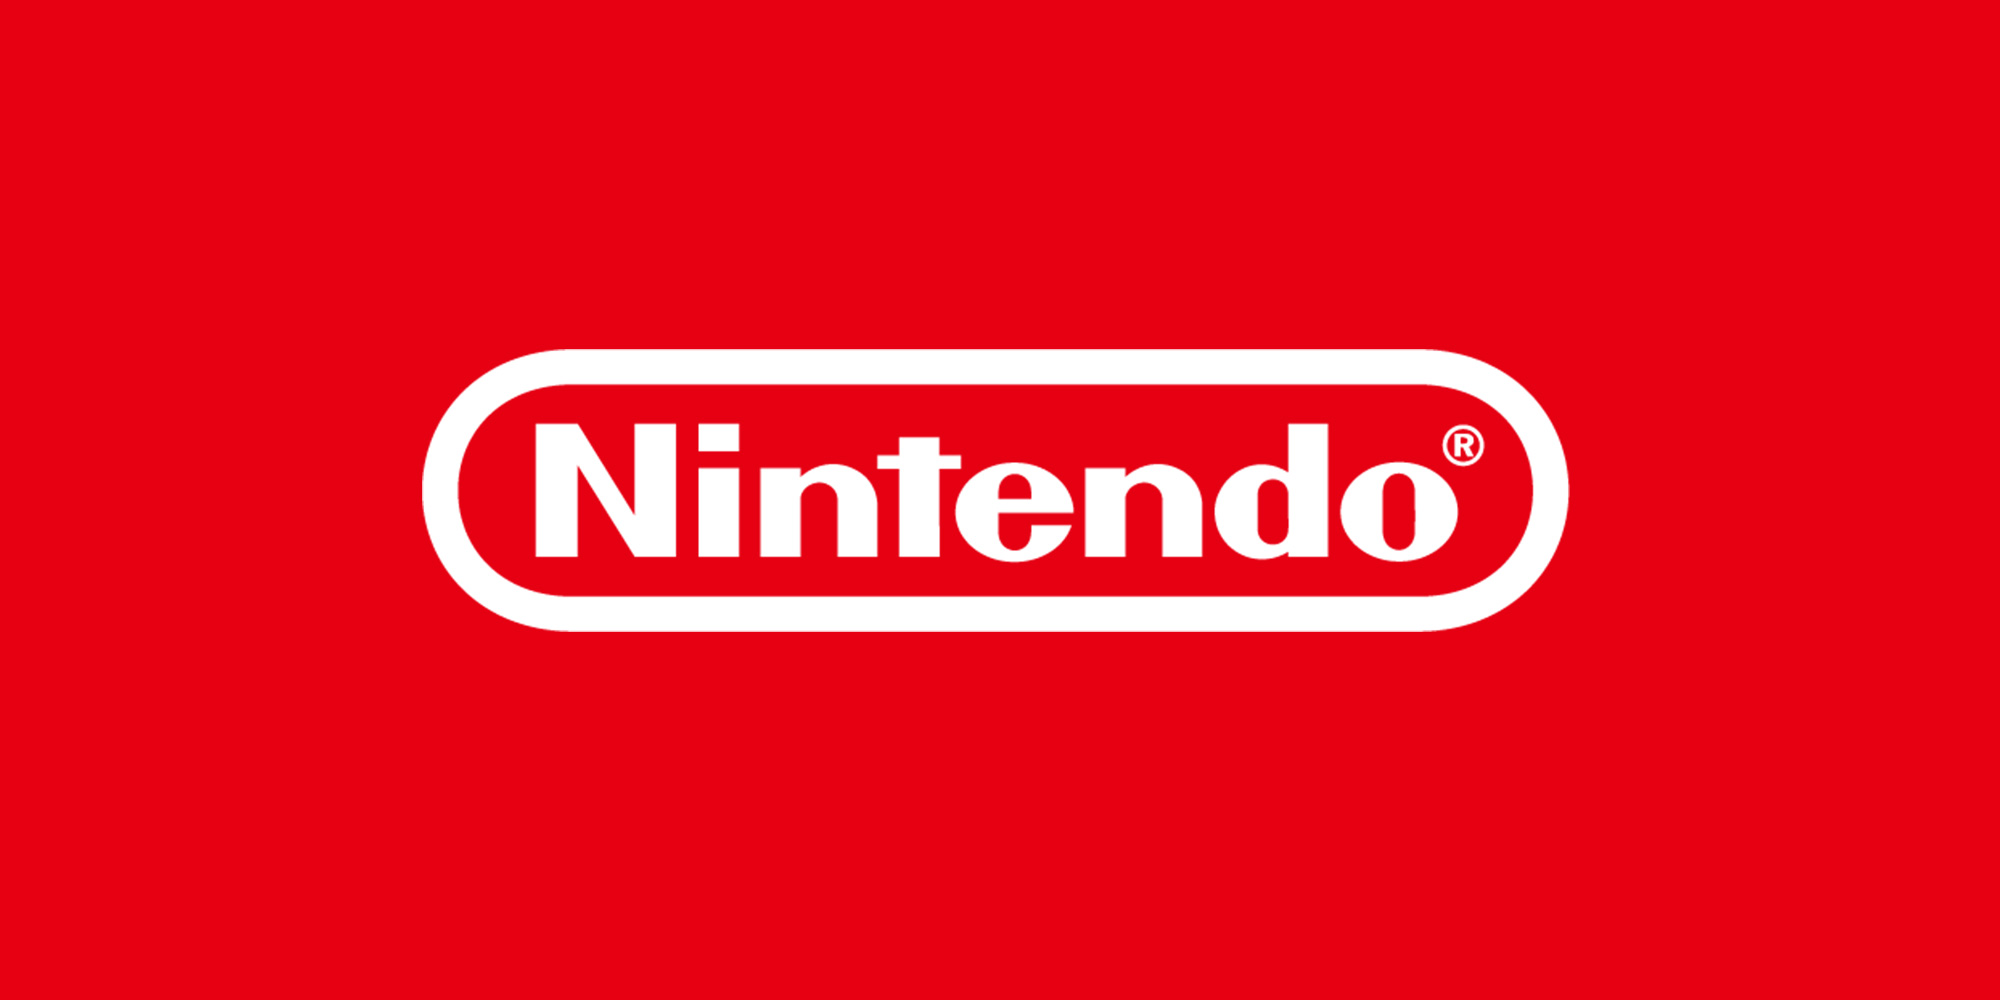 What is Nintendo doing to curb piracy globally?